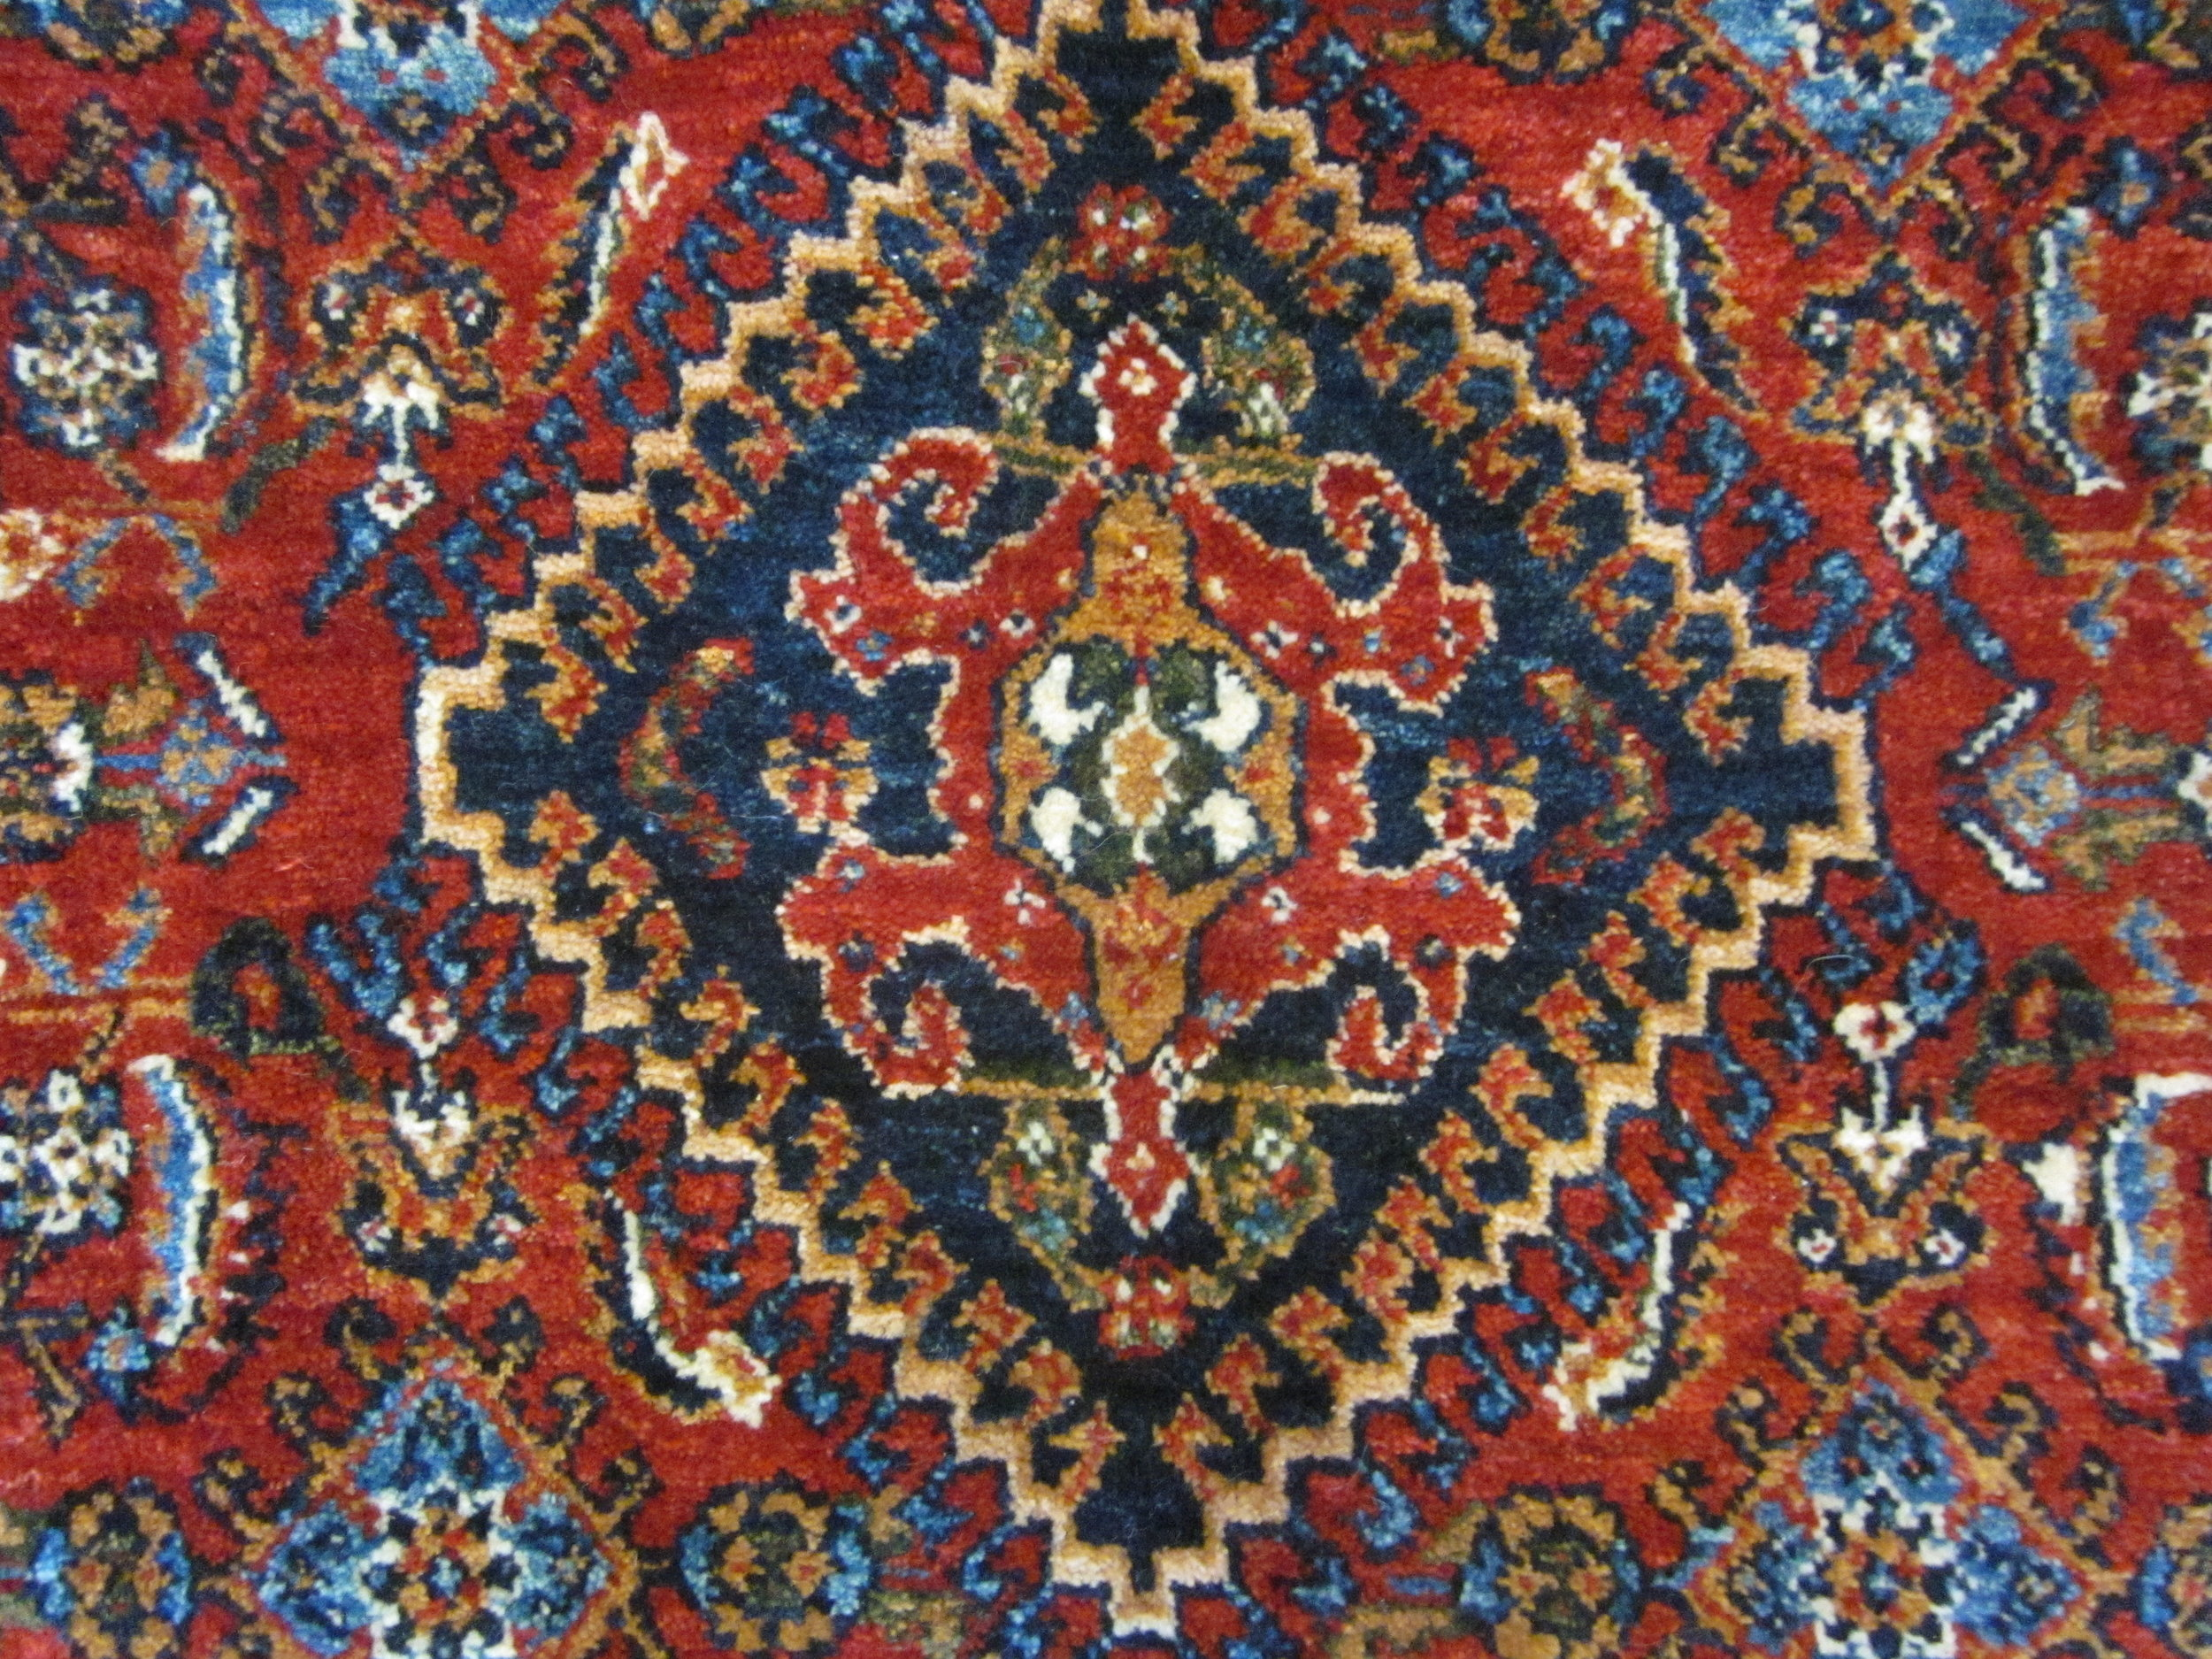 #48) Qashqai rug, close-up photo.